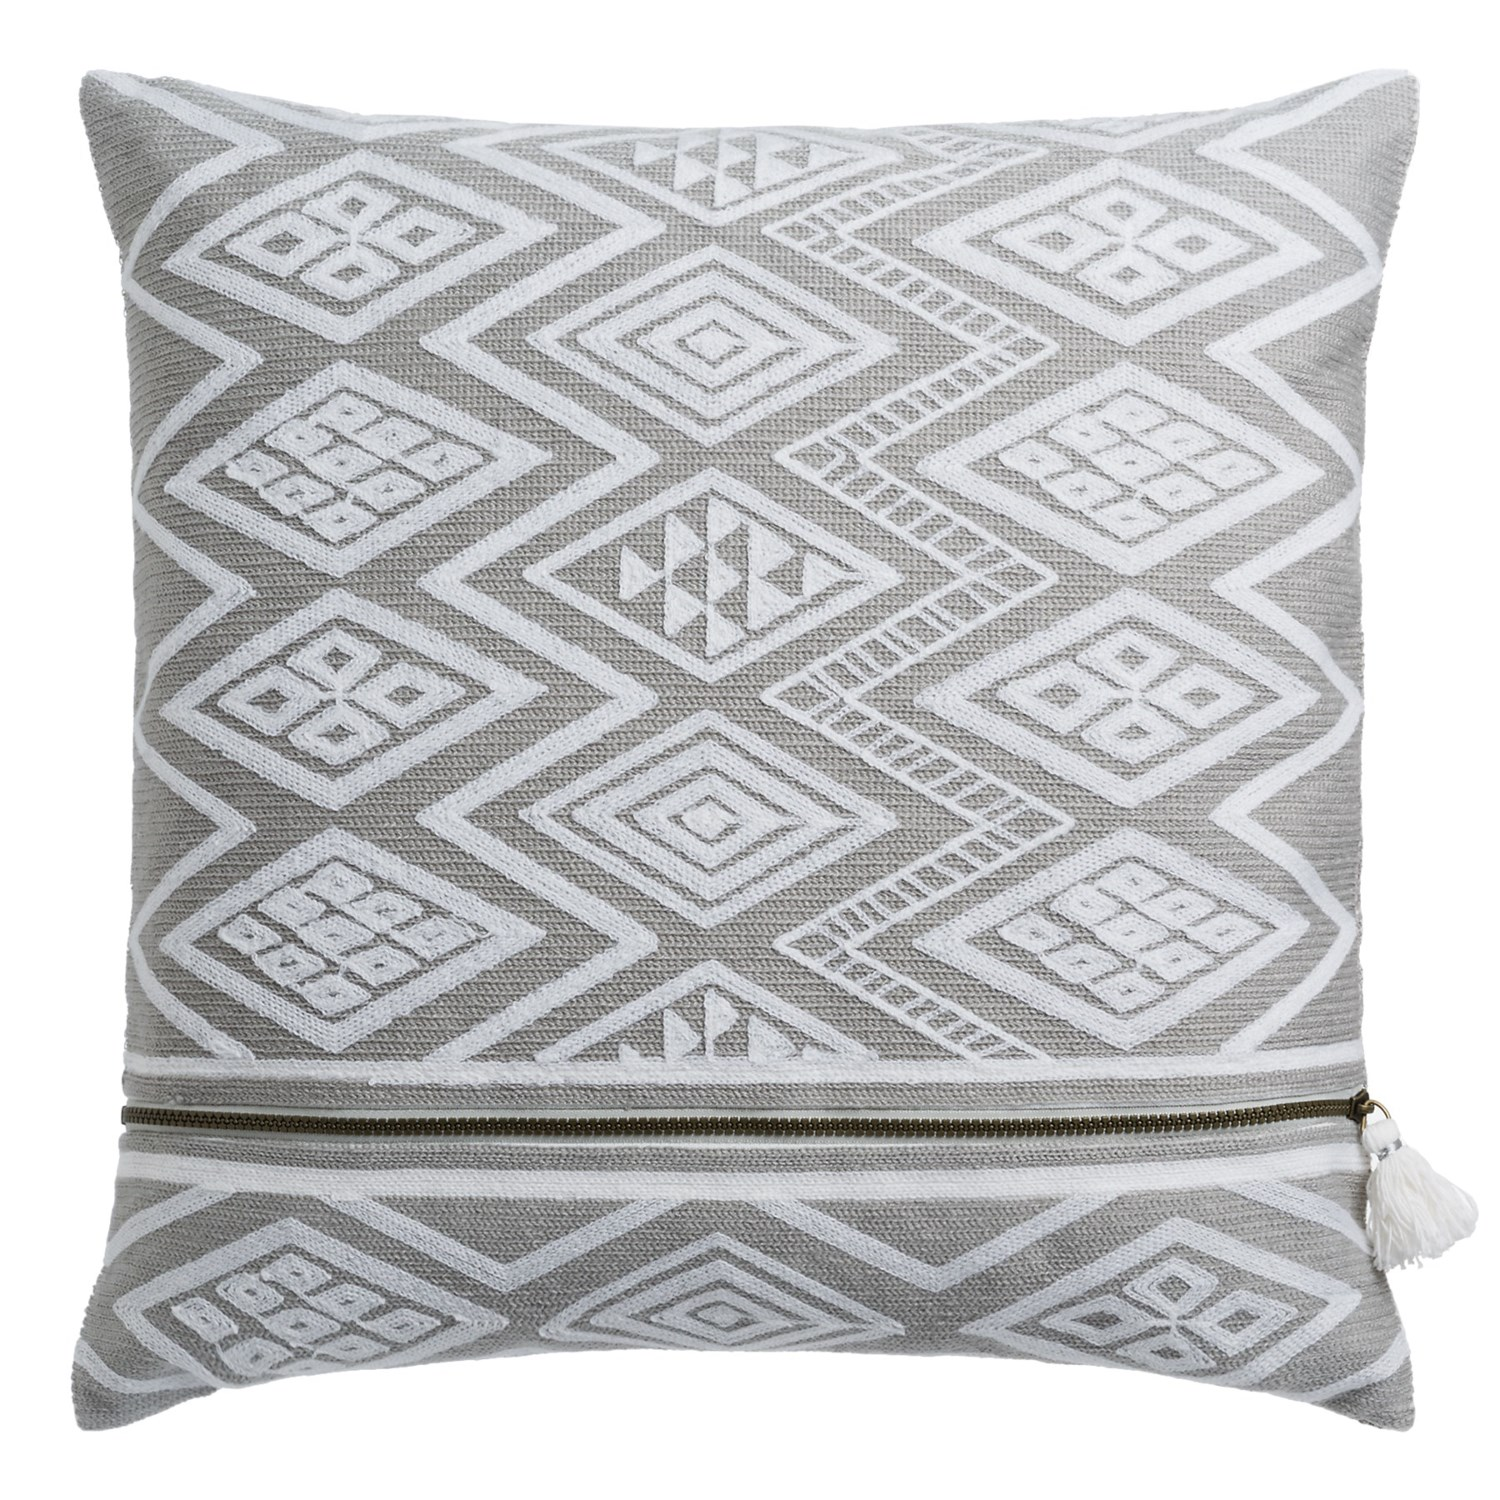 "Nicole Miller Atelier Geo-Pattern Decor Pillow - 20x20"", Feathers ..."